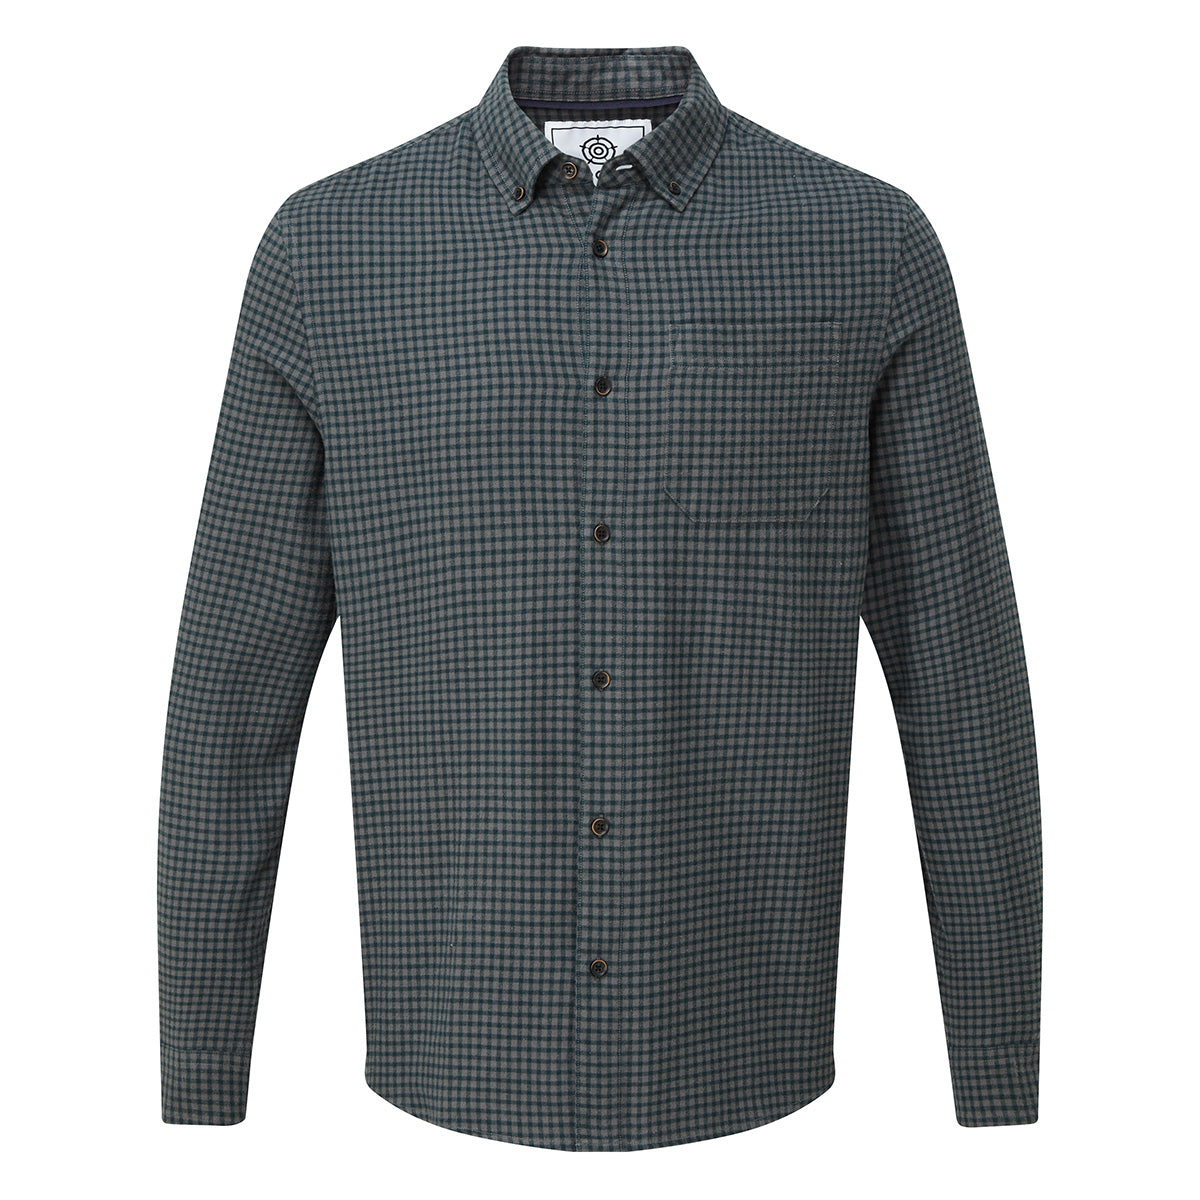 Sidney Mens Long Sleeve Small Flannel Check Shirt - Forest image 4